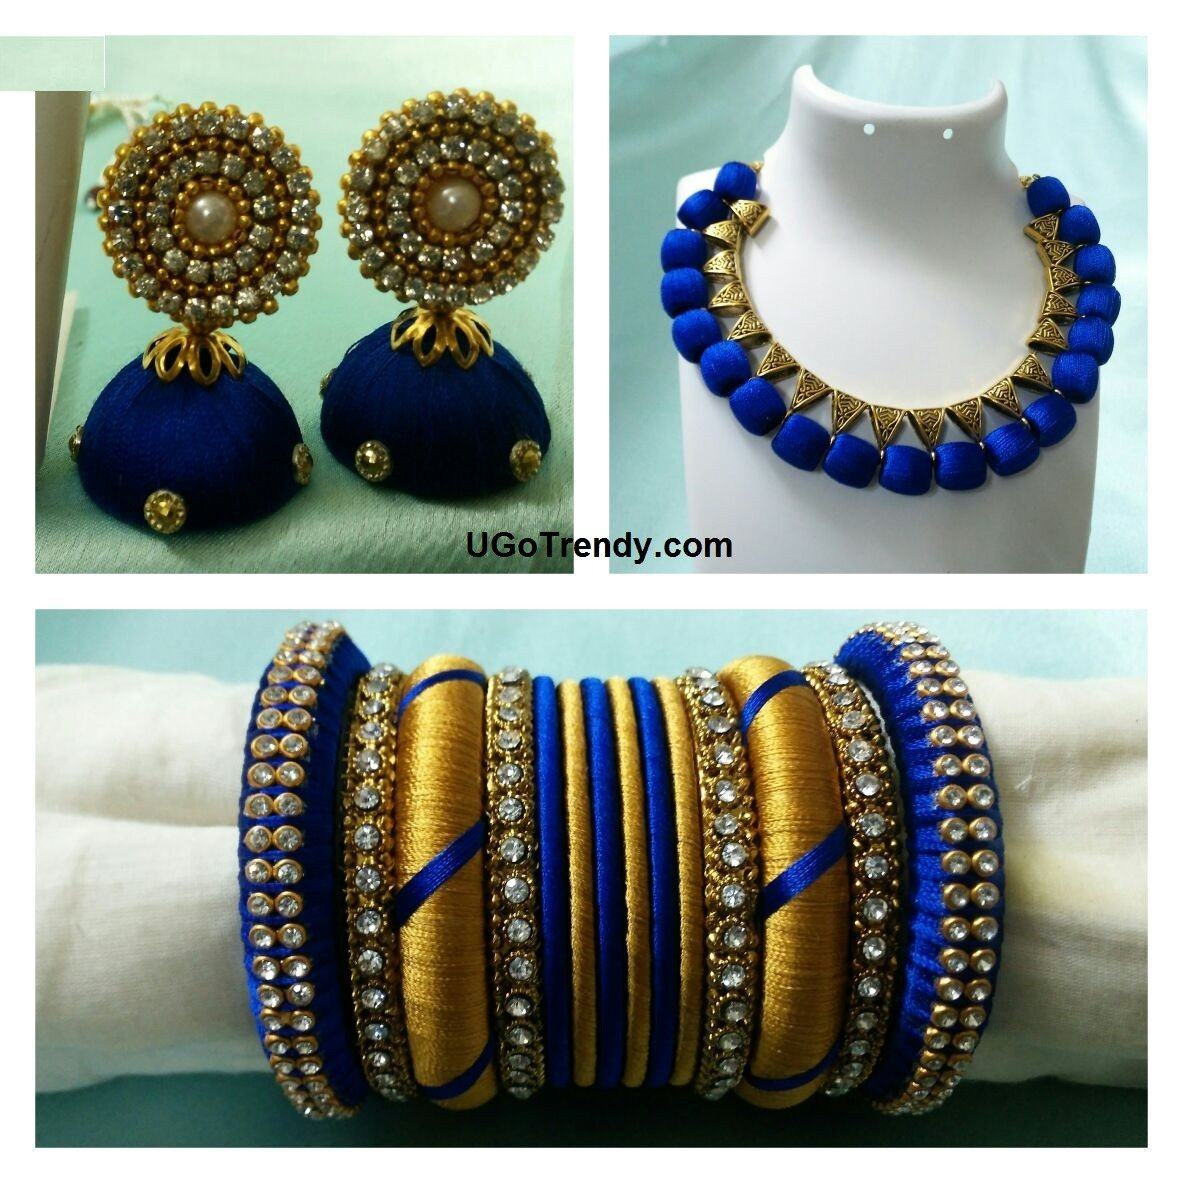 Handmade Silk thread  Necklace with matching Jhumka earrings and bangles set